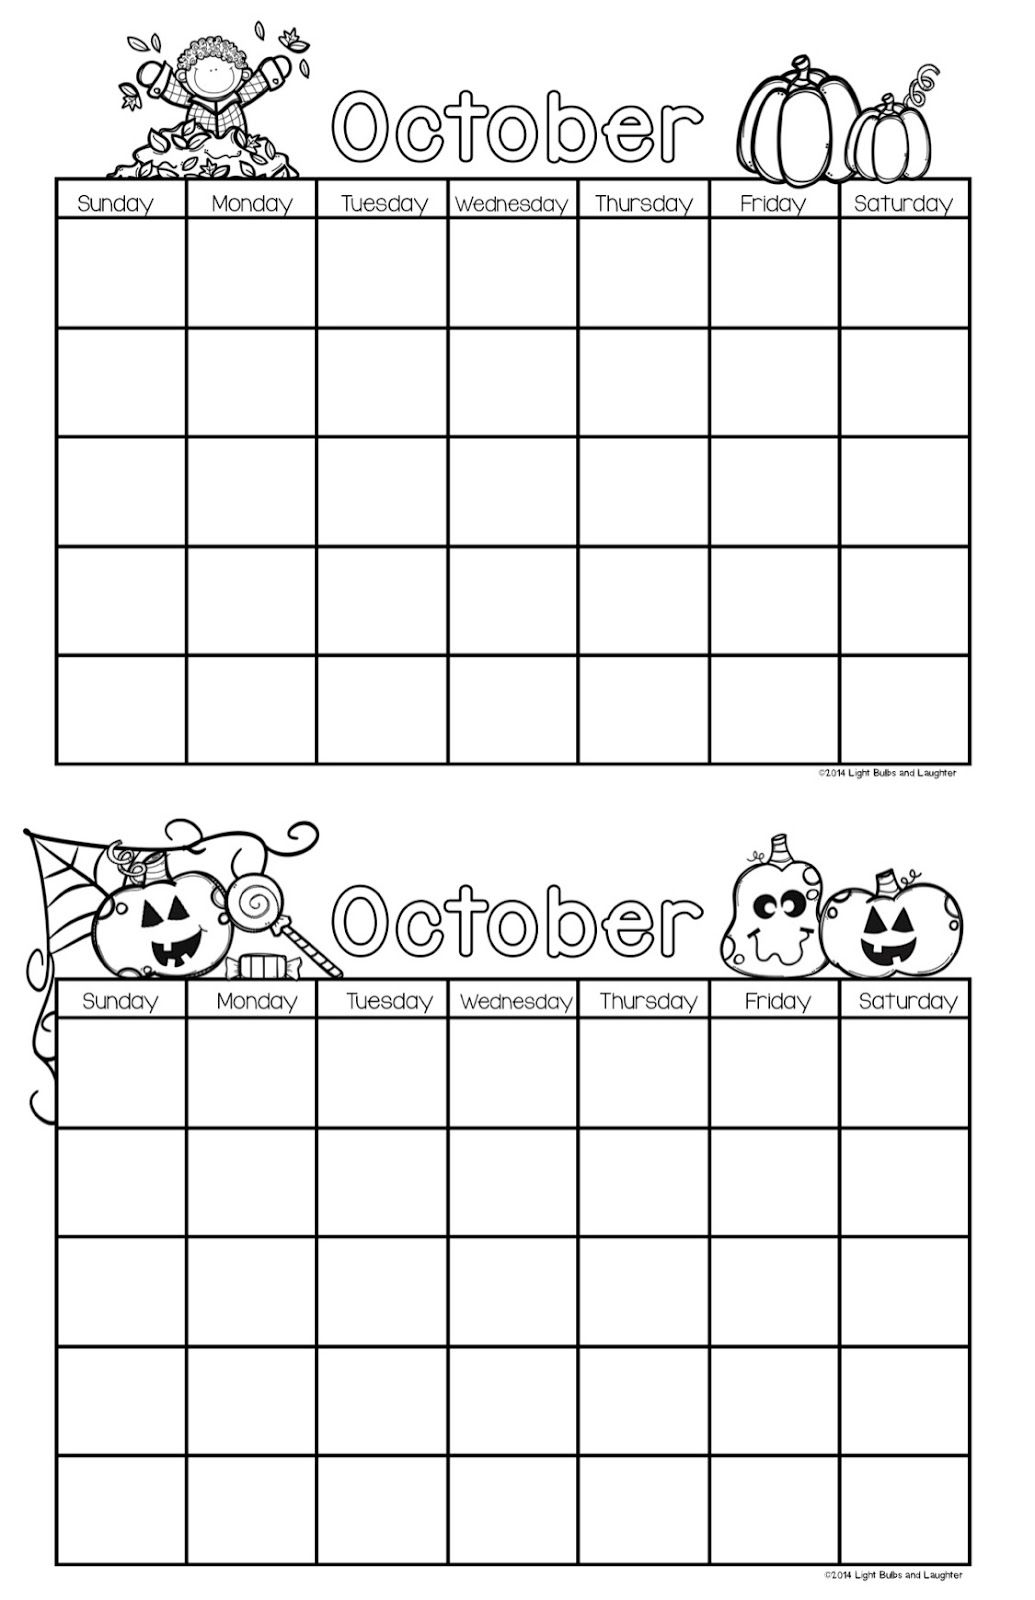 October Calendars Free From Light Bulbs And Laughter